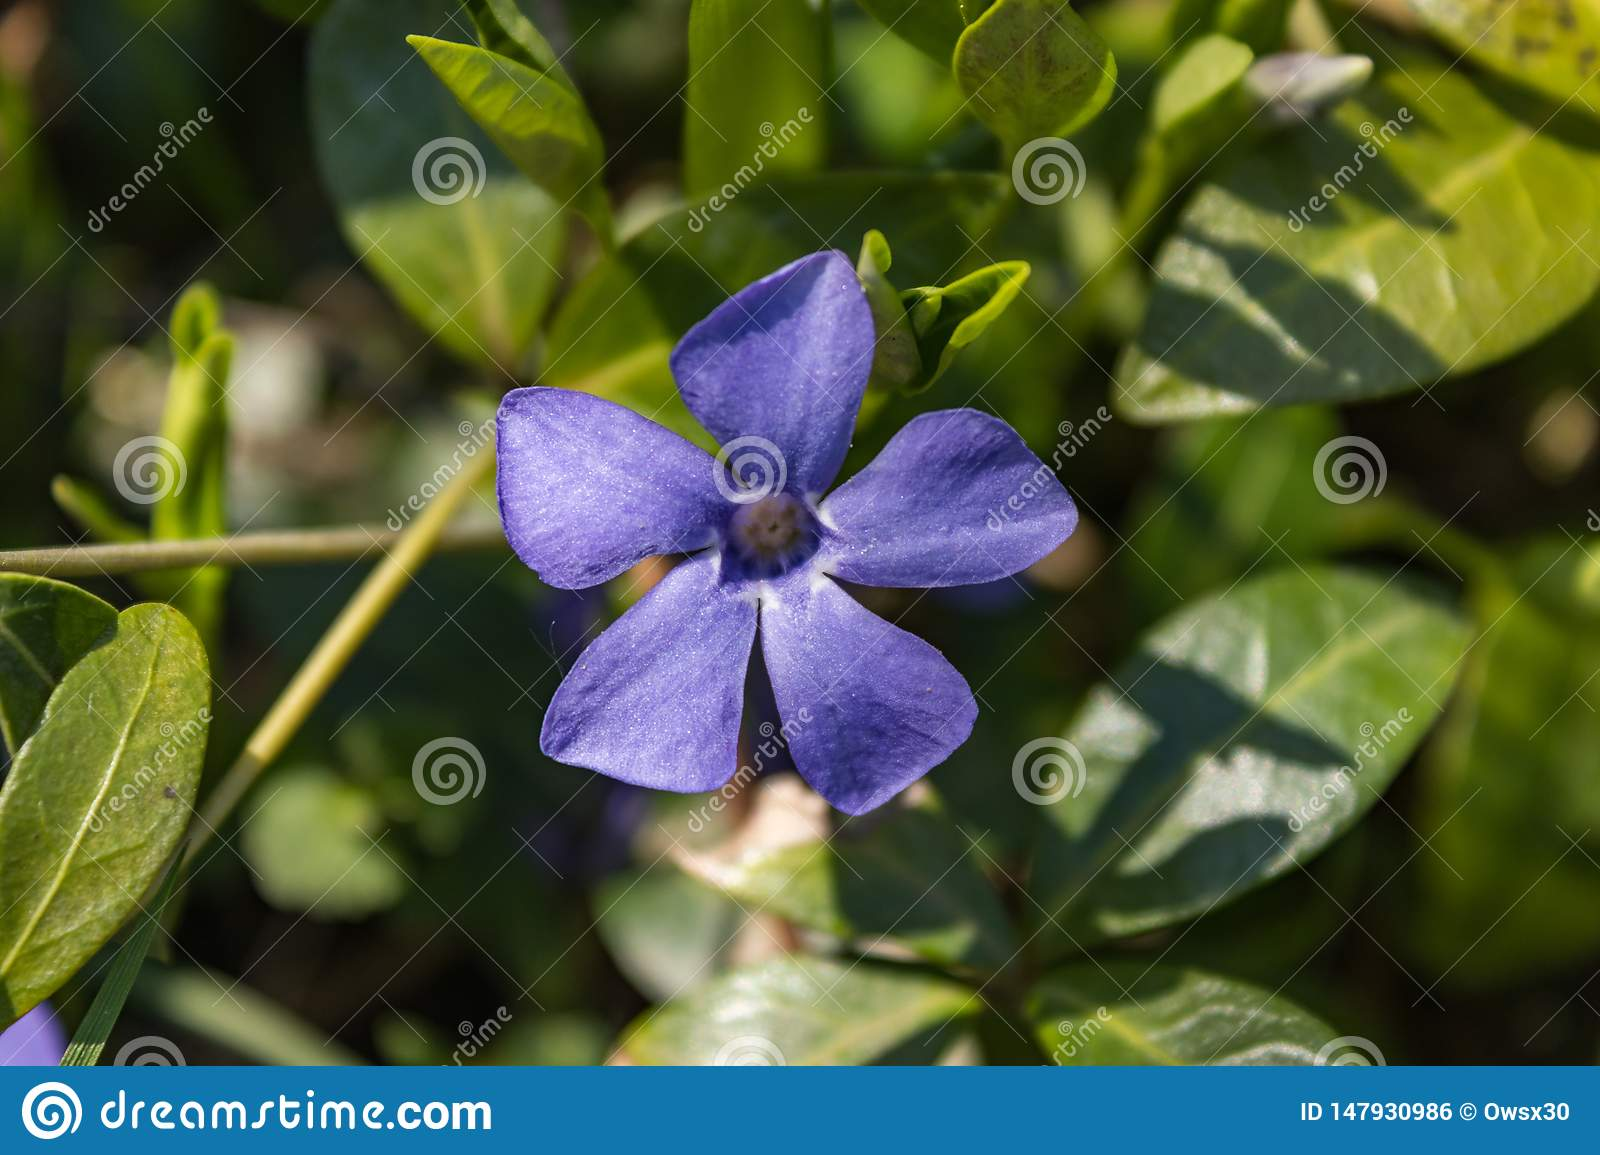 Winky flower on the background of green plant leaves and grass. Spring nature macro photography blooming wink flower